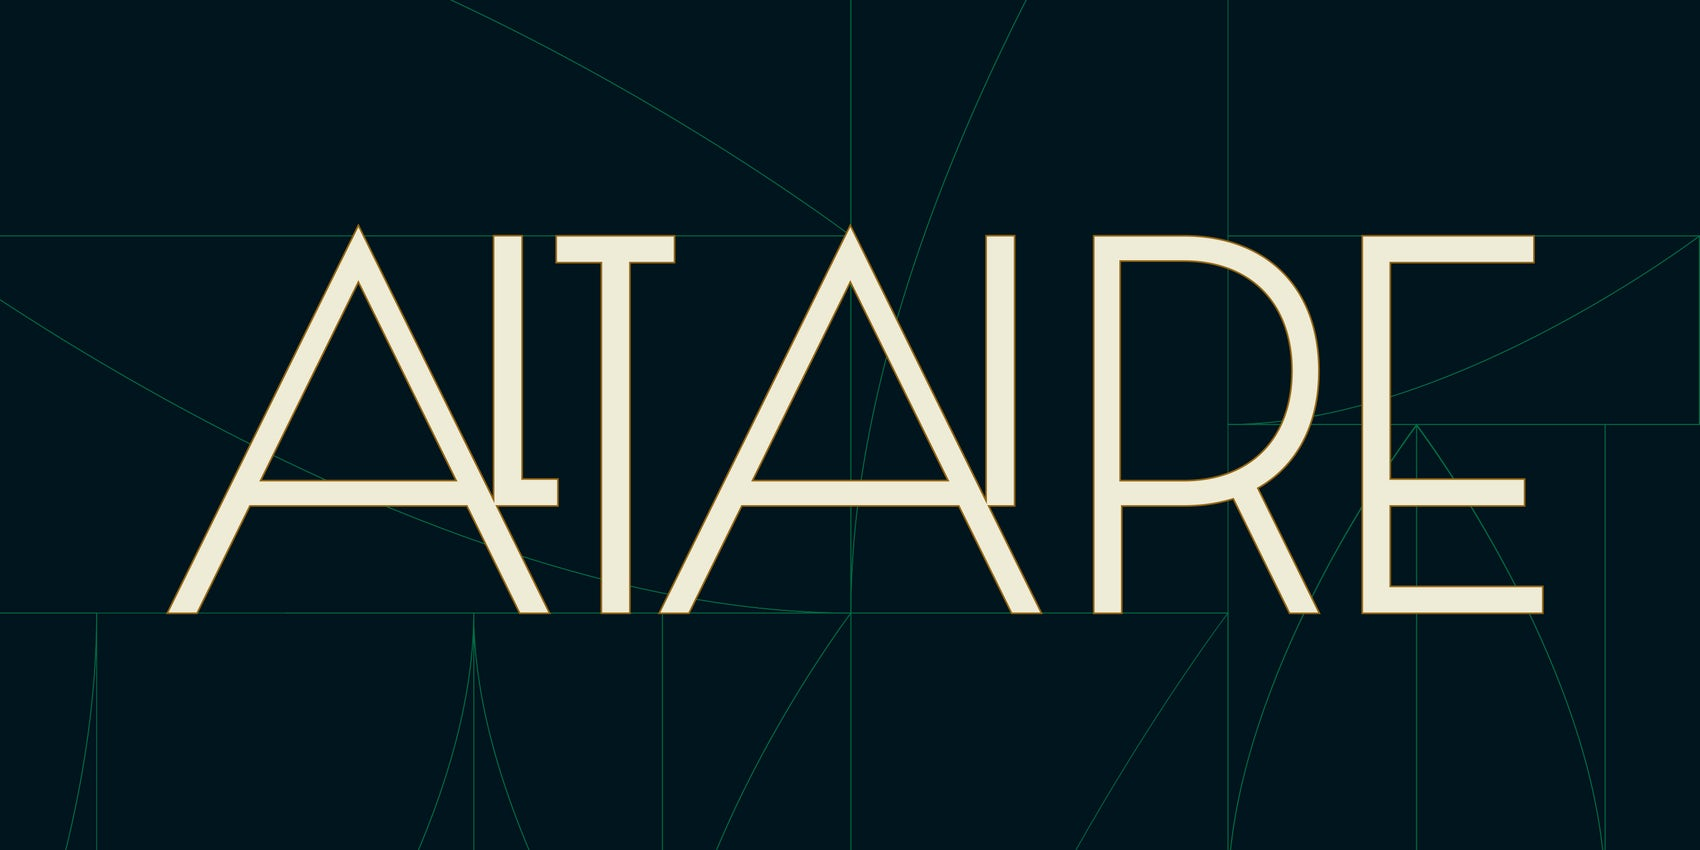 Altaire Logo Brand Typography Graphic Design Chicago Span02